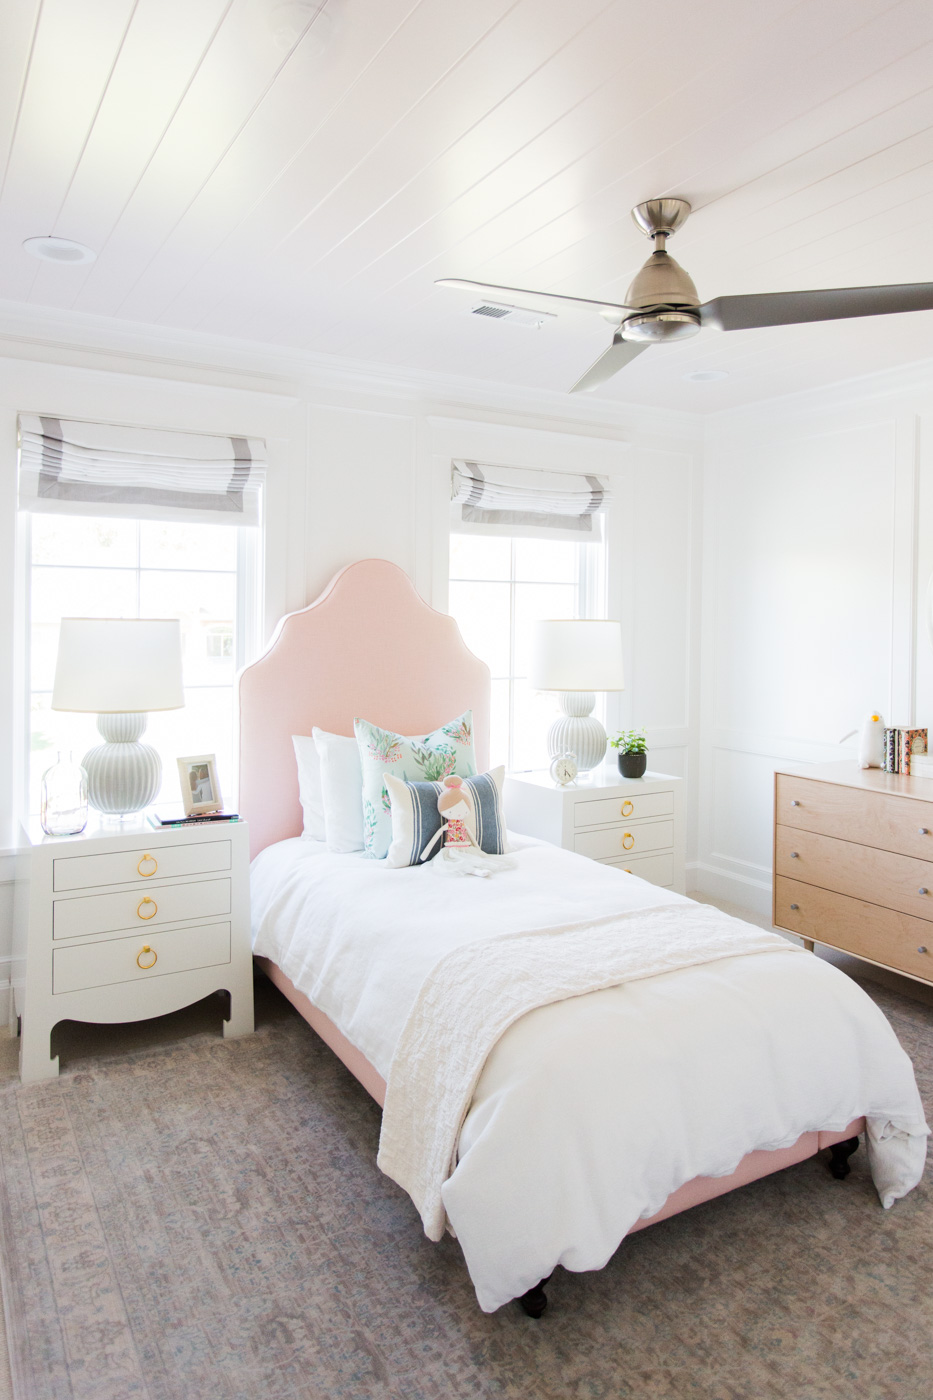 Sweet Girlsu0027 Room With Pink Headboard || Studio McGee